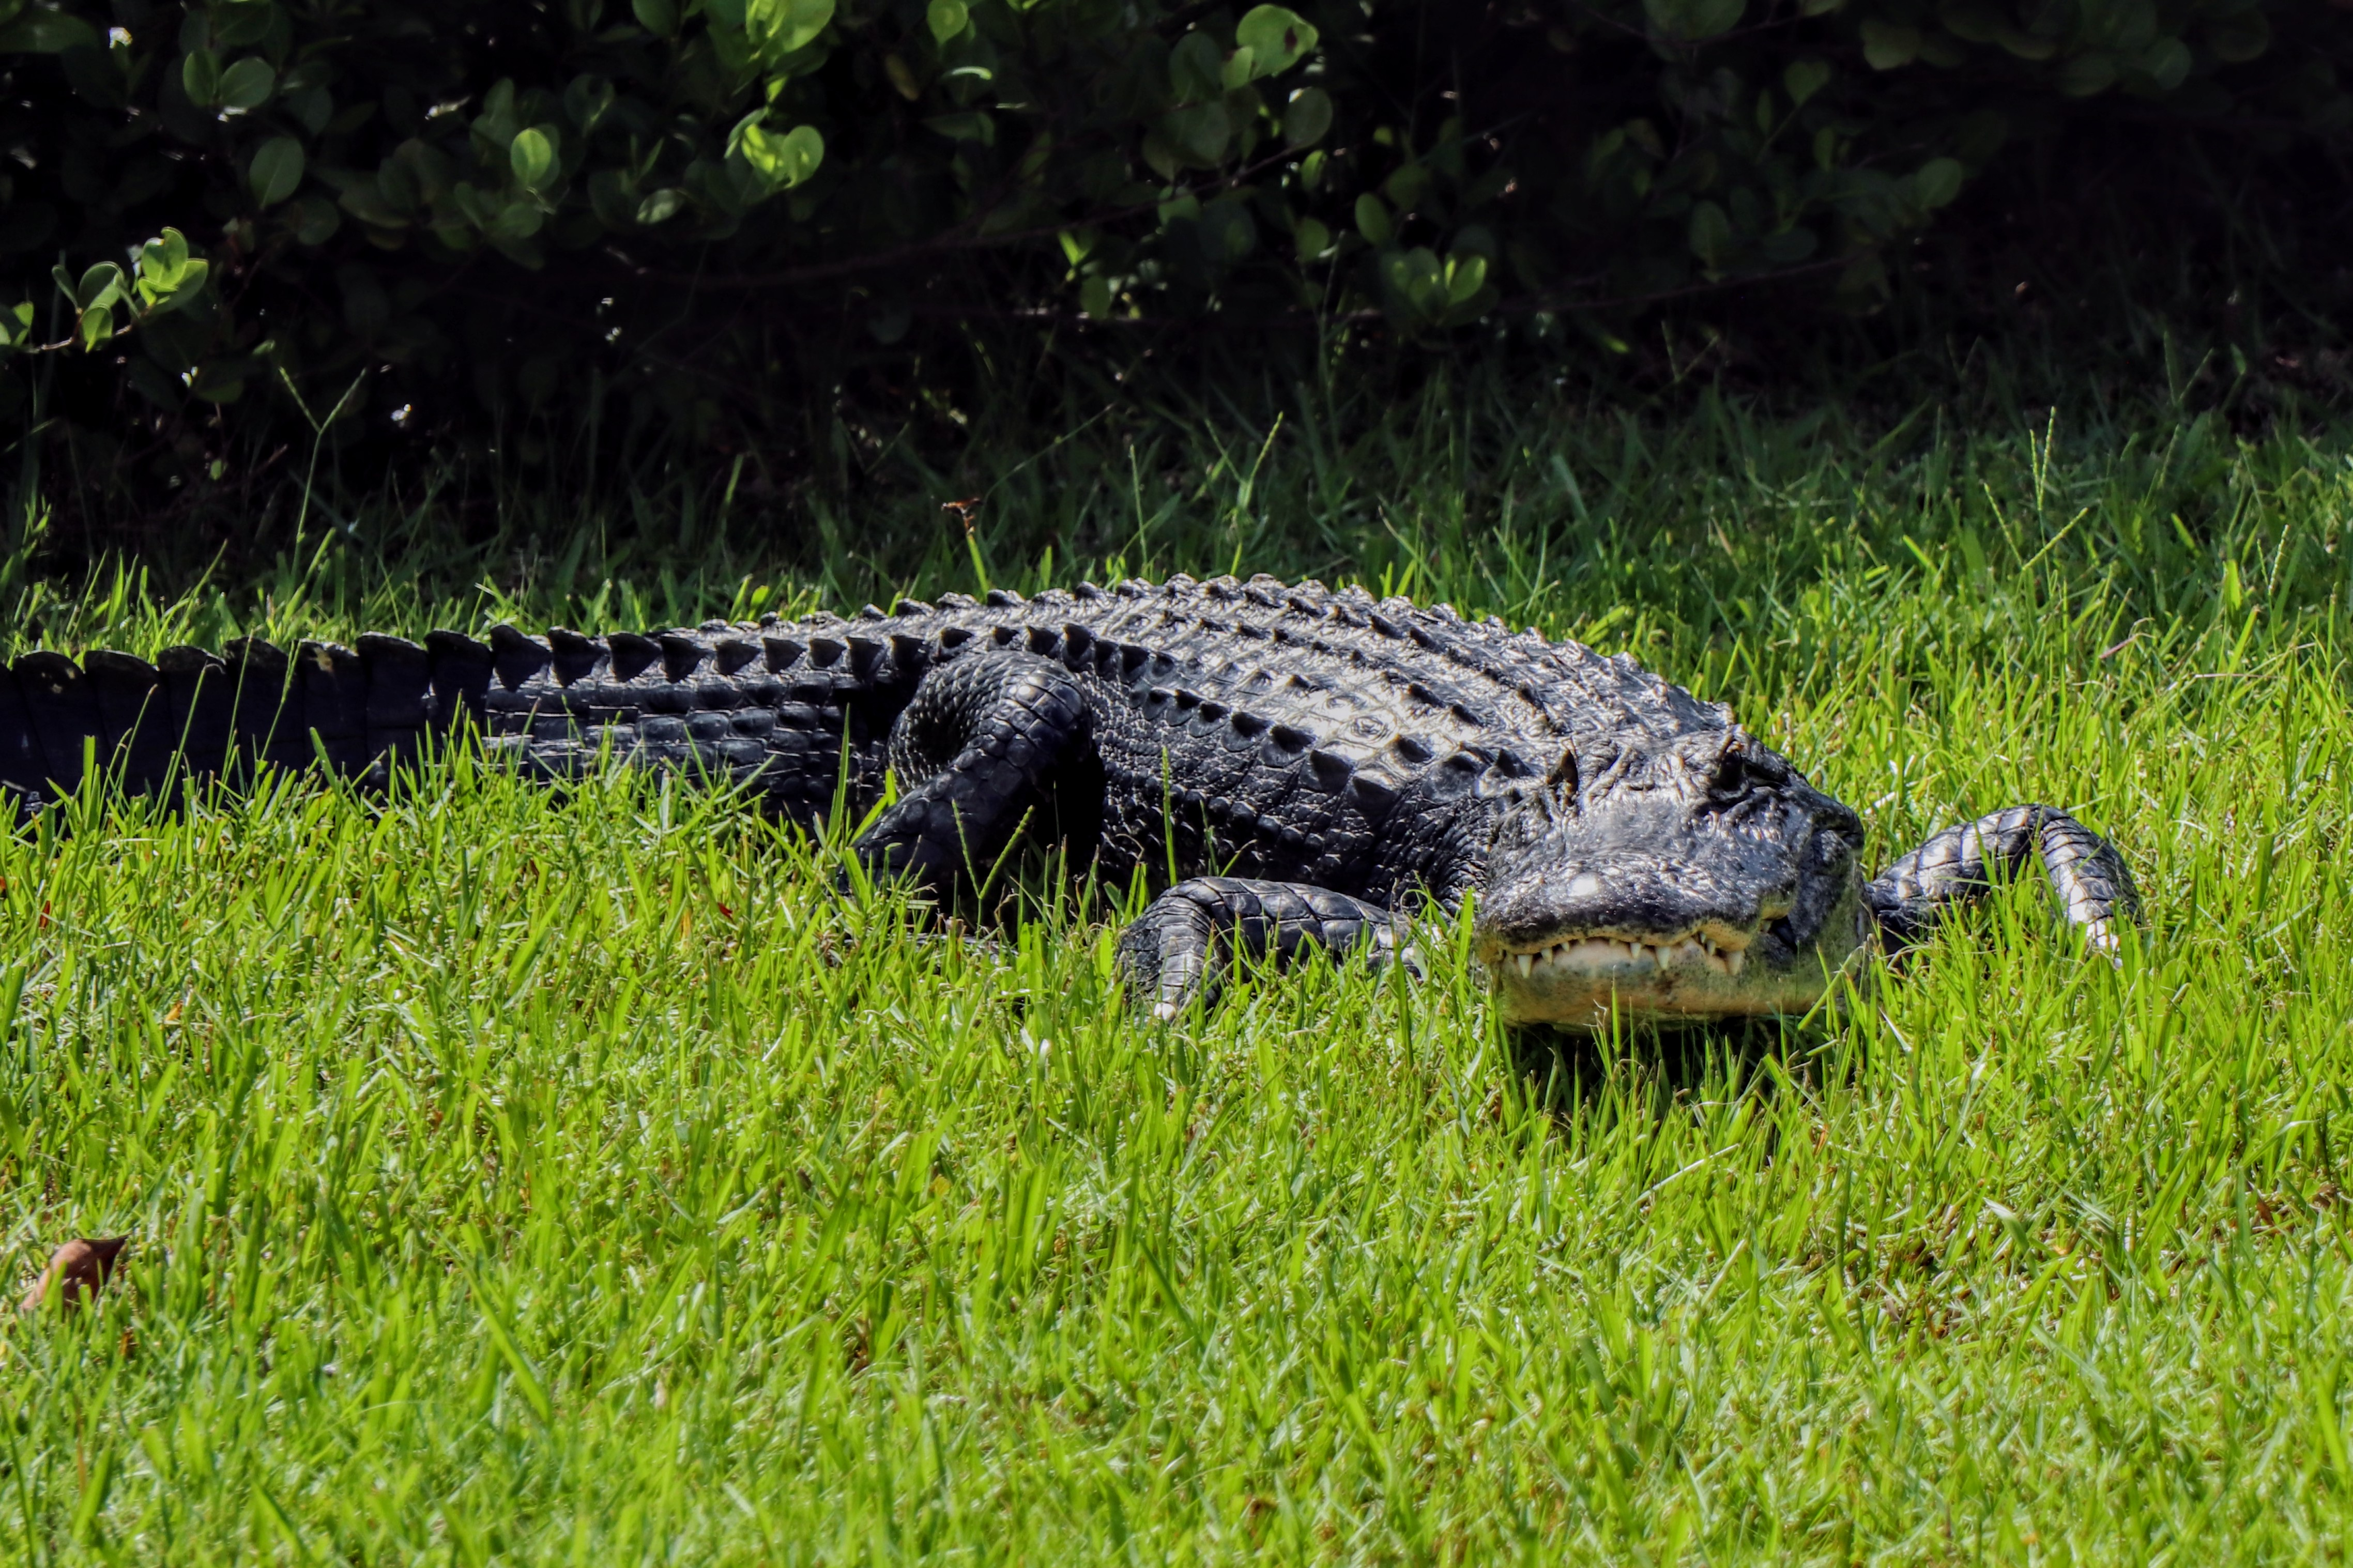 American Alligator sunbathing on the grass - Shark Valley Everglades National Park